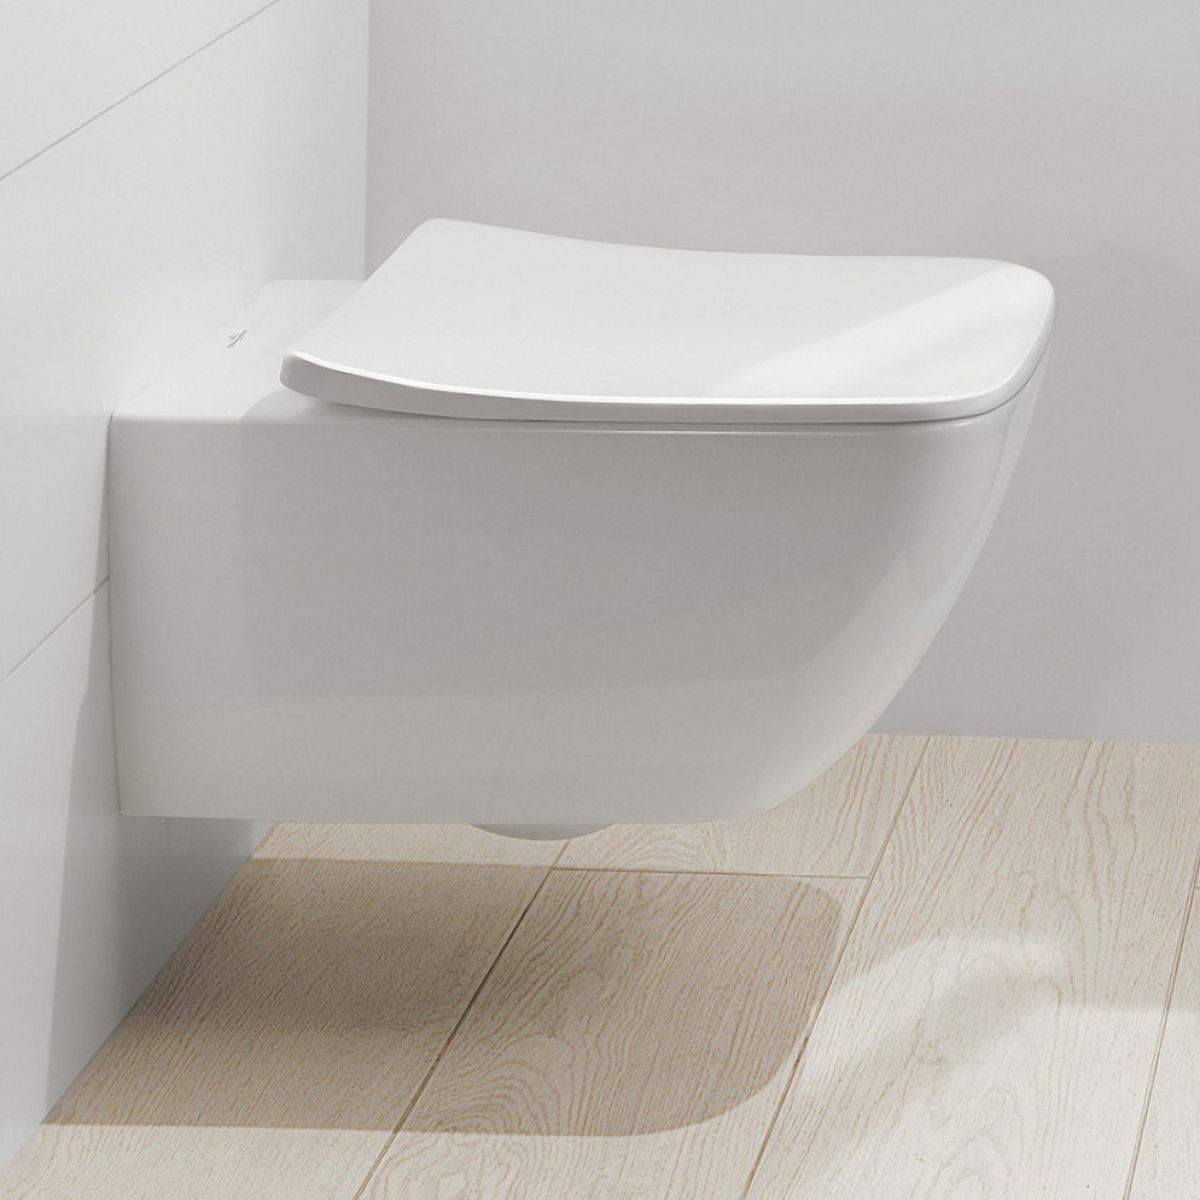 villeroy boch venticello rimless wall hung toilet. Black Bedroom Furniture Sets. Home Design Ideas